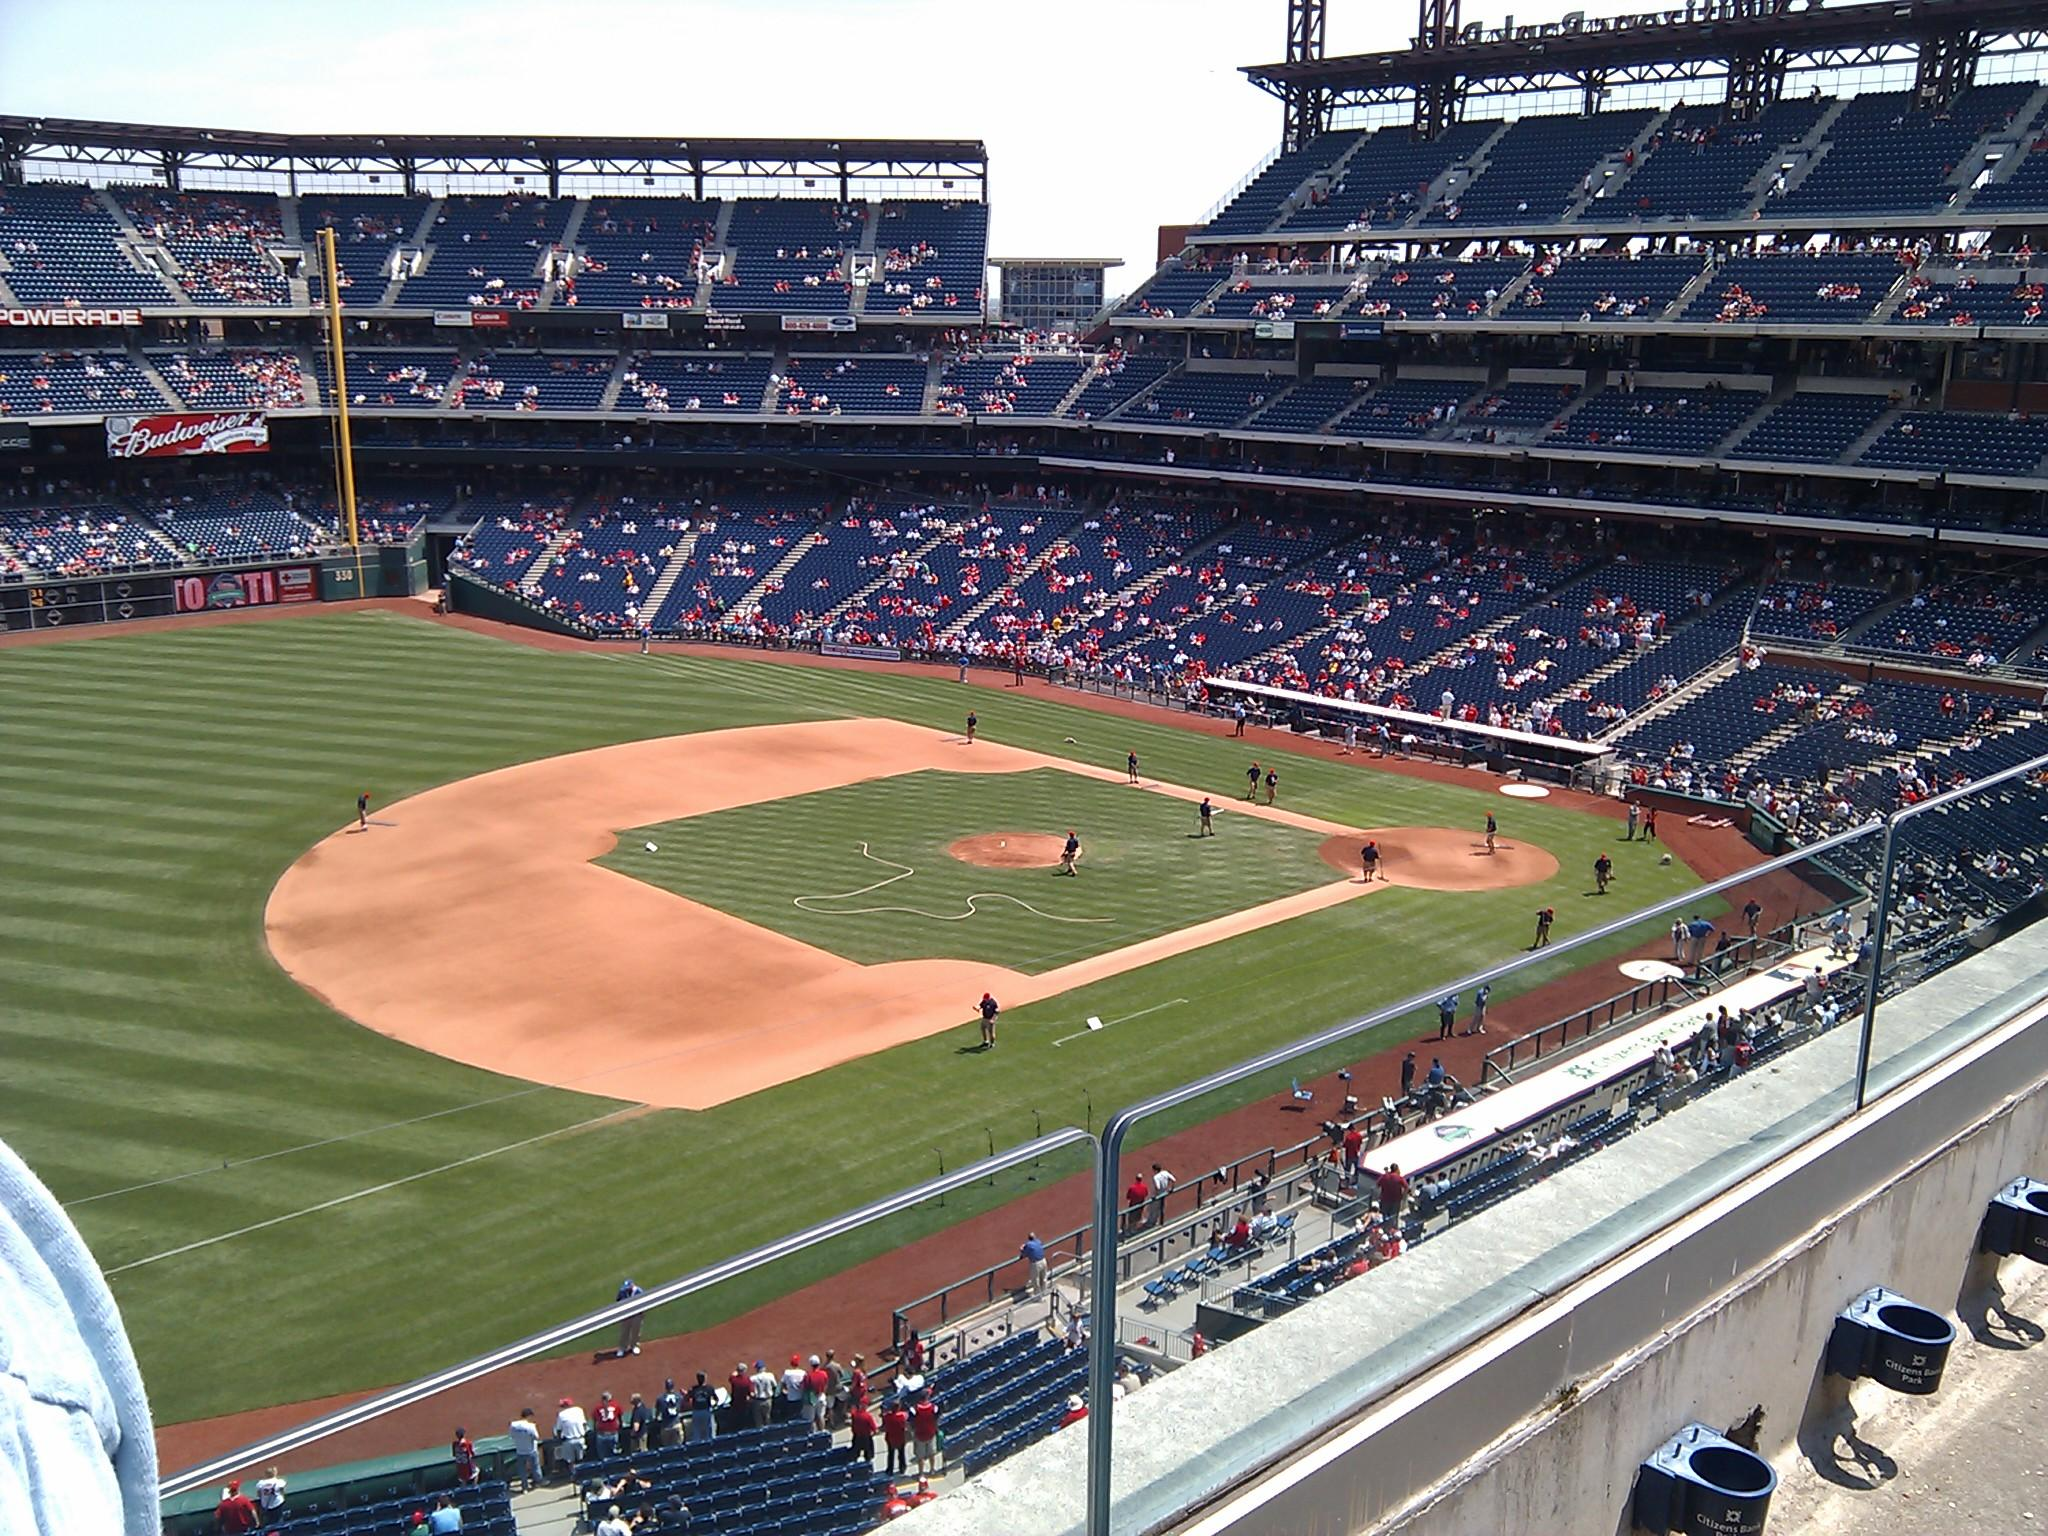 Citizens Bank Park Section 329 Row 2 Seat 24